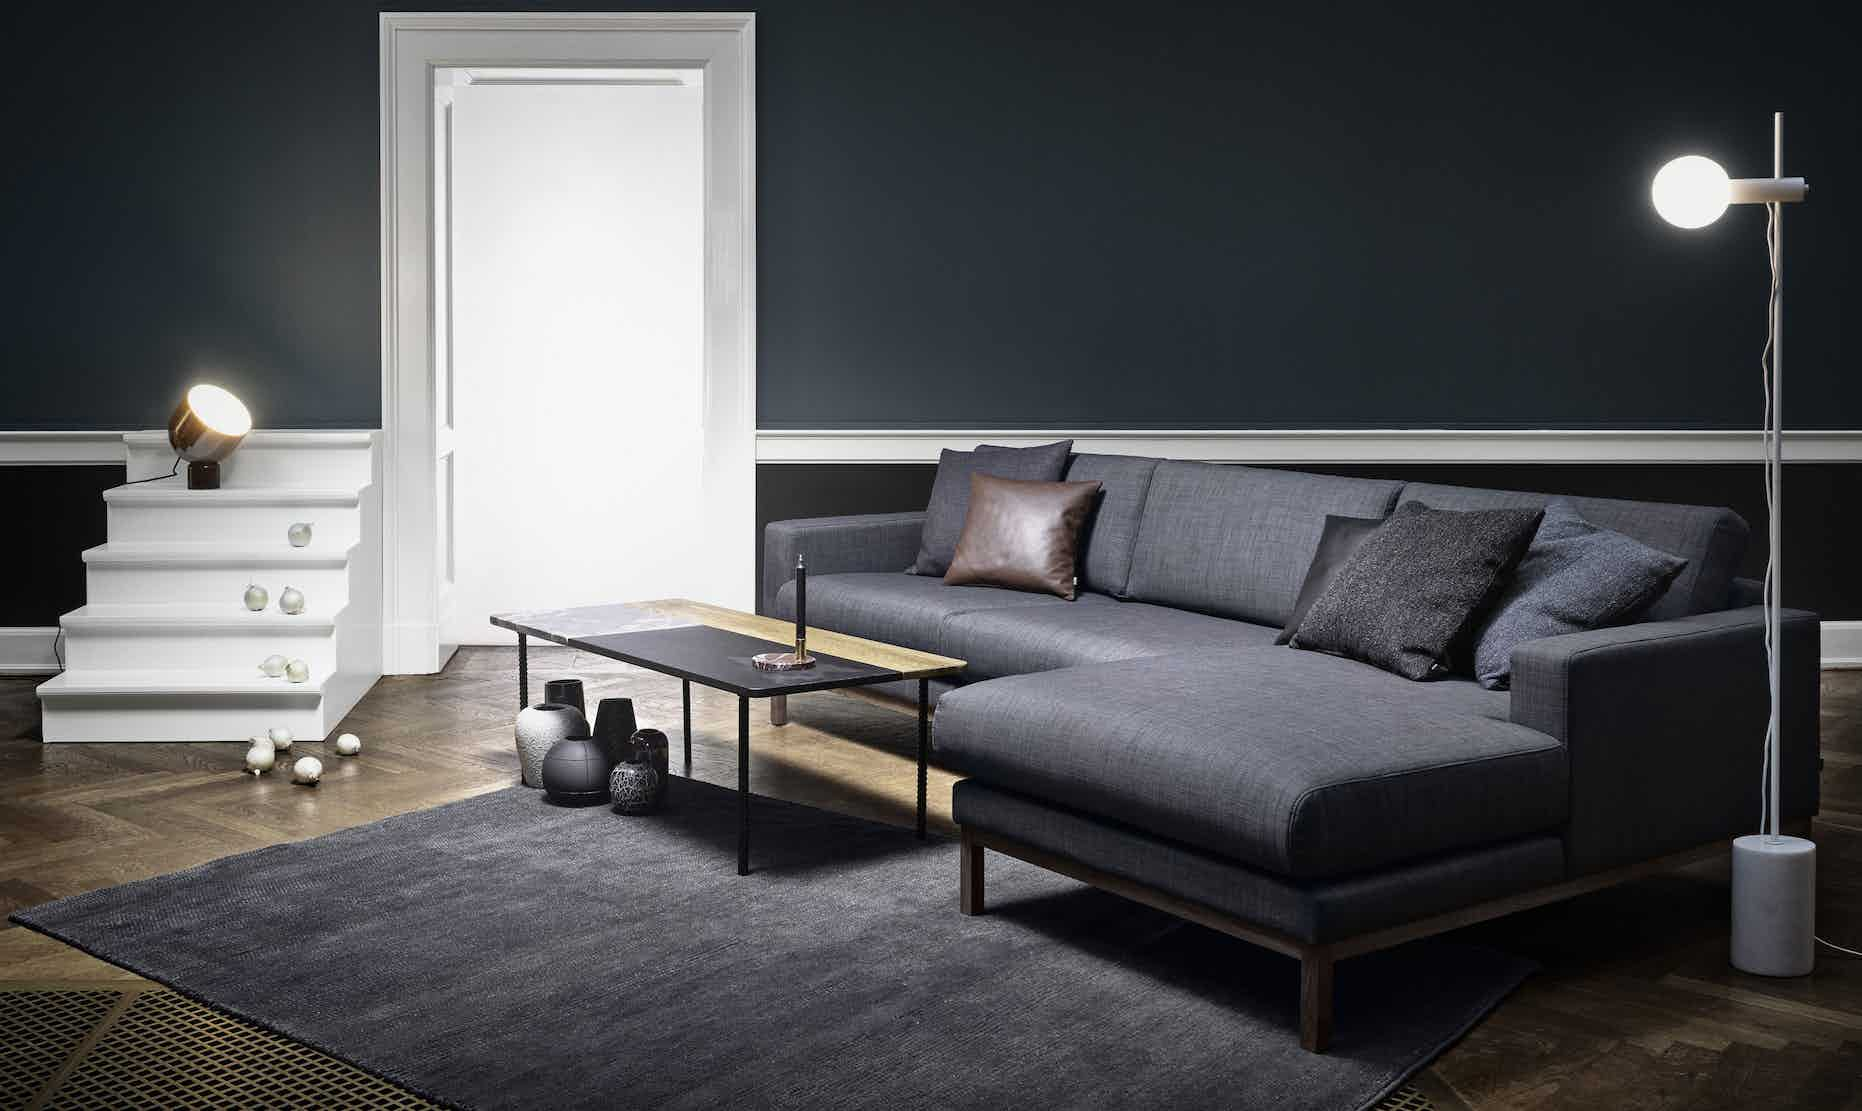 North Symbiosis Velluto Revolve Faro Sofa Copy